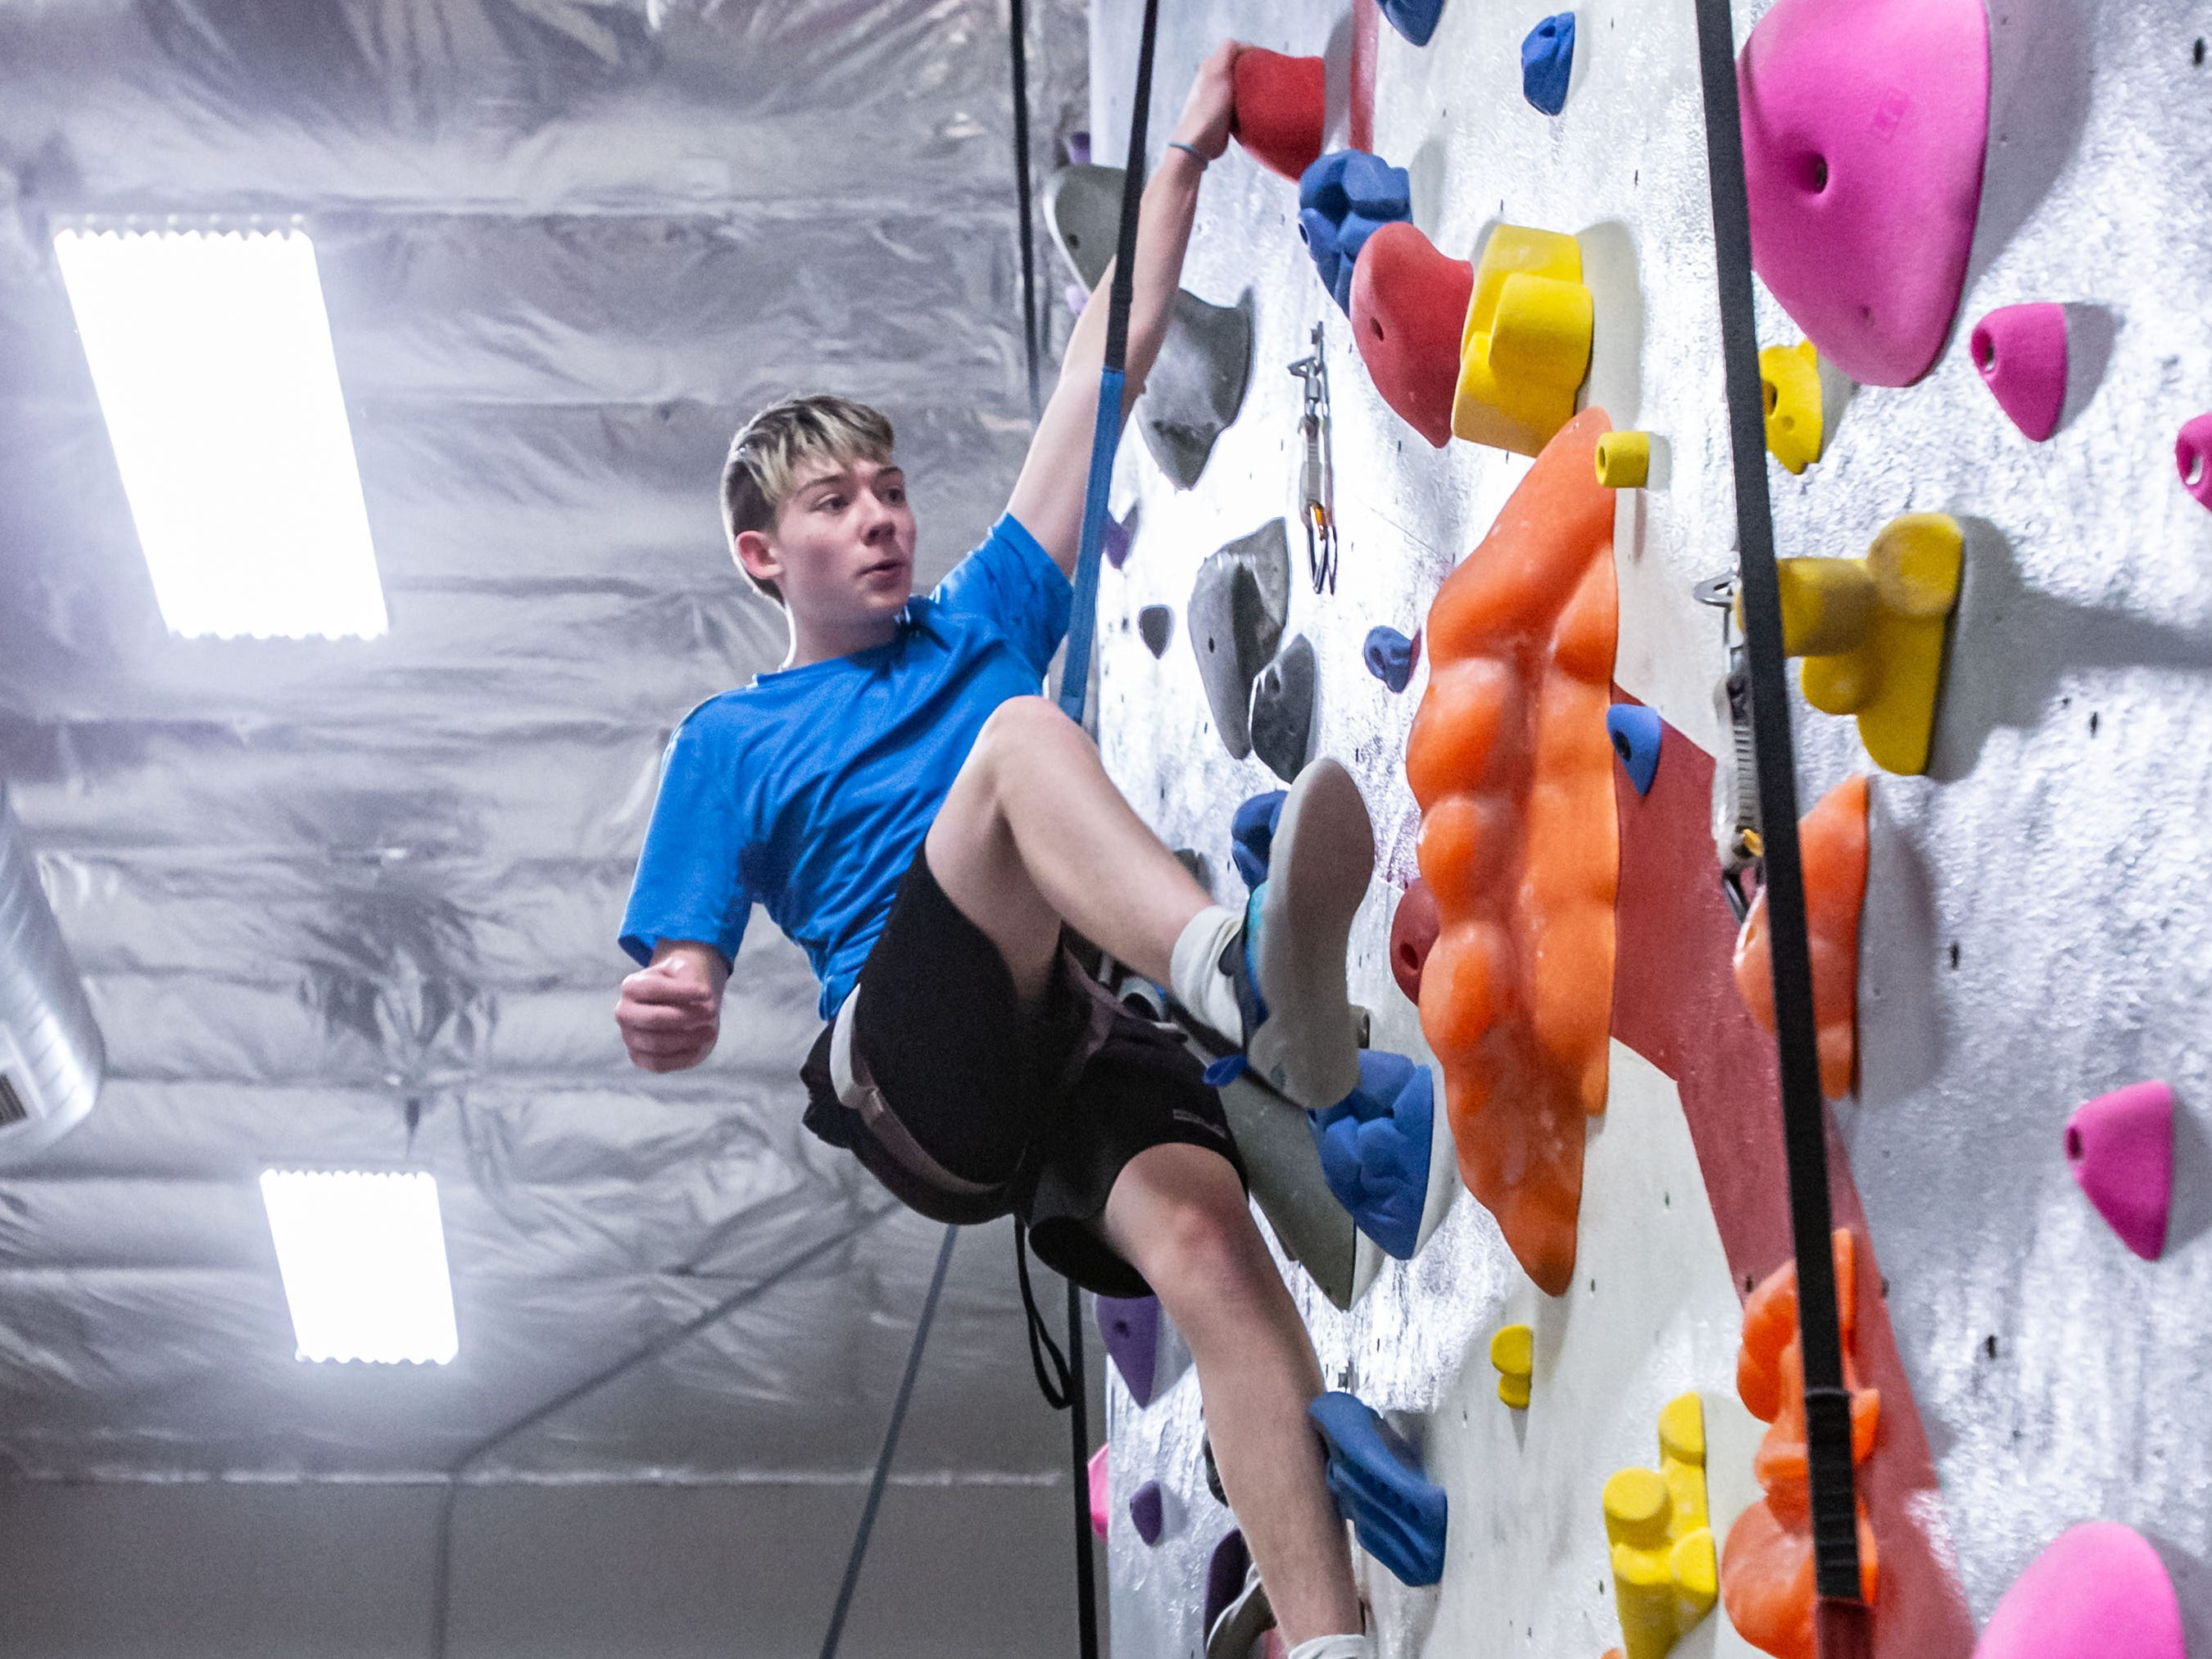 Oconomowoc freshman Zander Boettcher scales a wall during practice with his high school climbing team at Adventure Rock in Brookfield on Monday, Jan. 7, 2019.